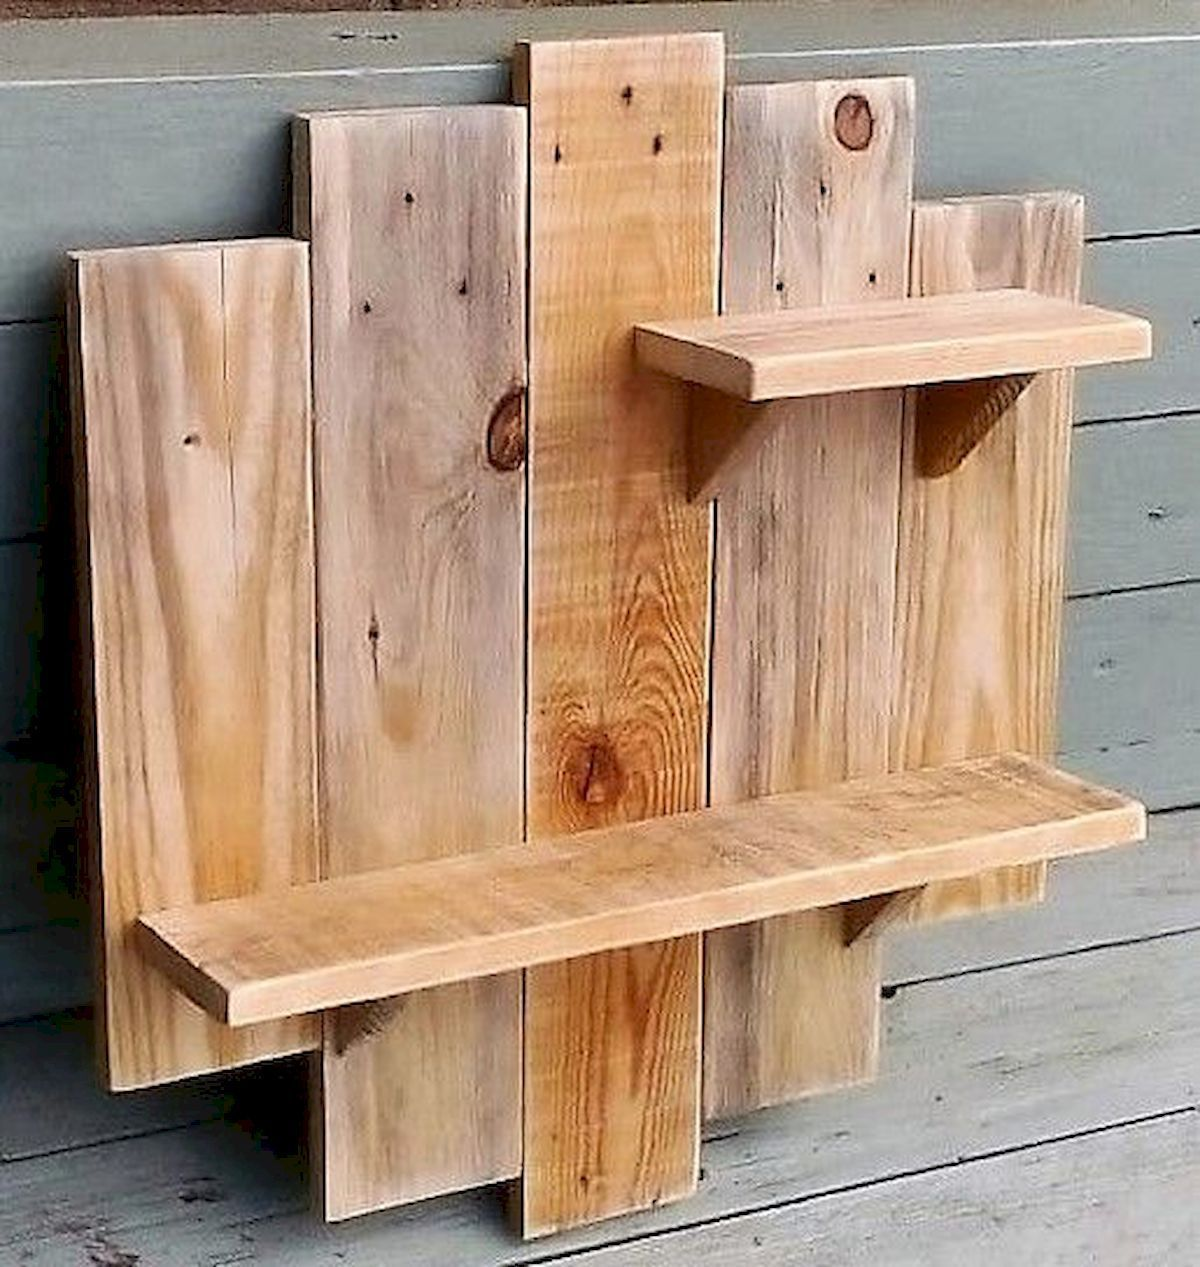 25 Most Creative Wooden Pallets Projects Ideas (23 In 2019